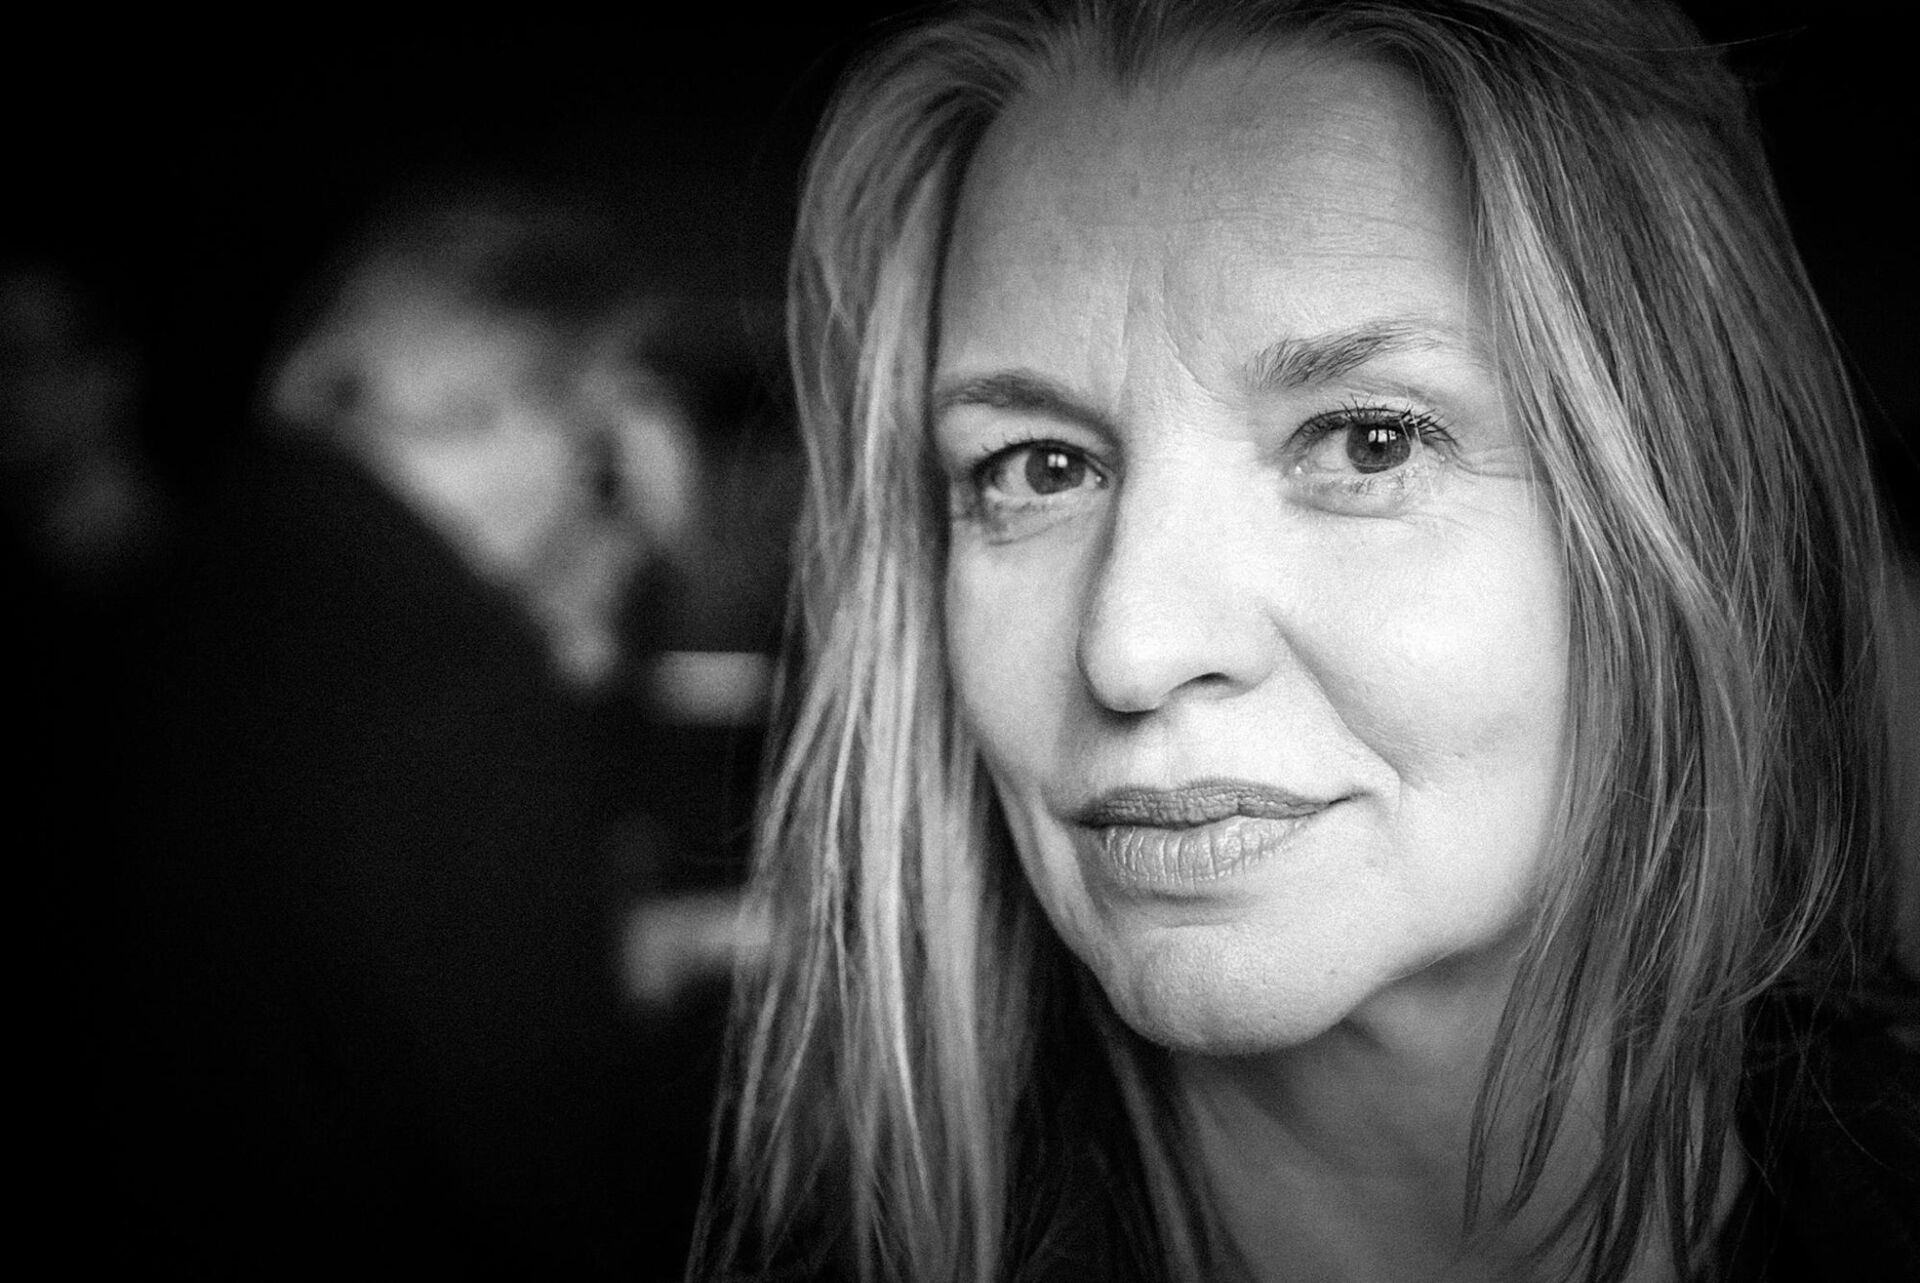 Image for Corona und die Branche: Anja Dihrberg, Casting Director